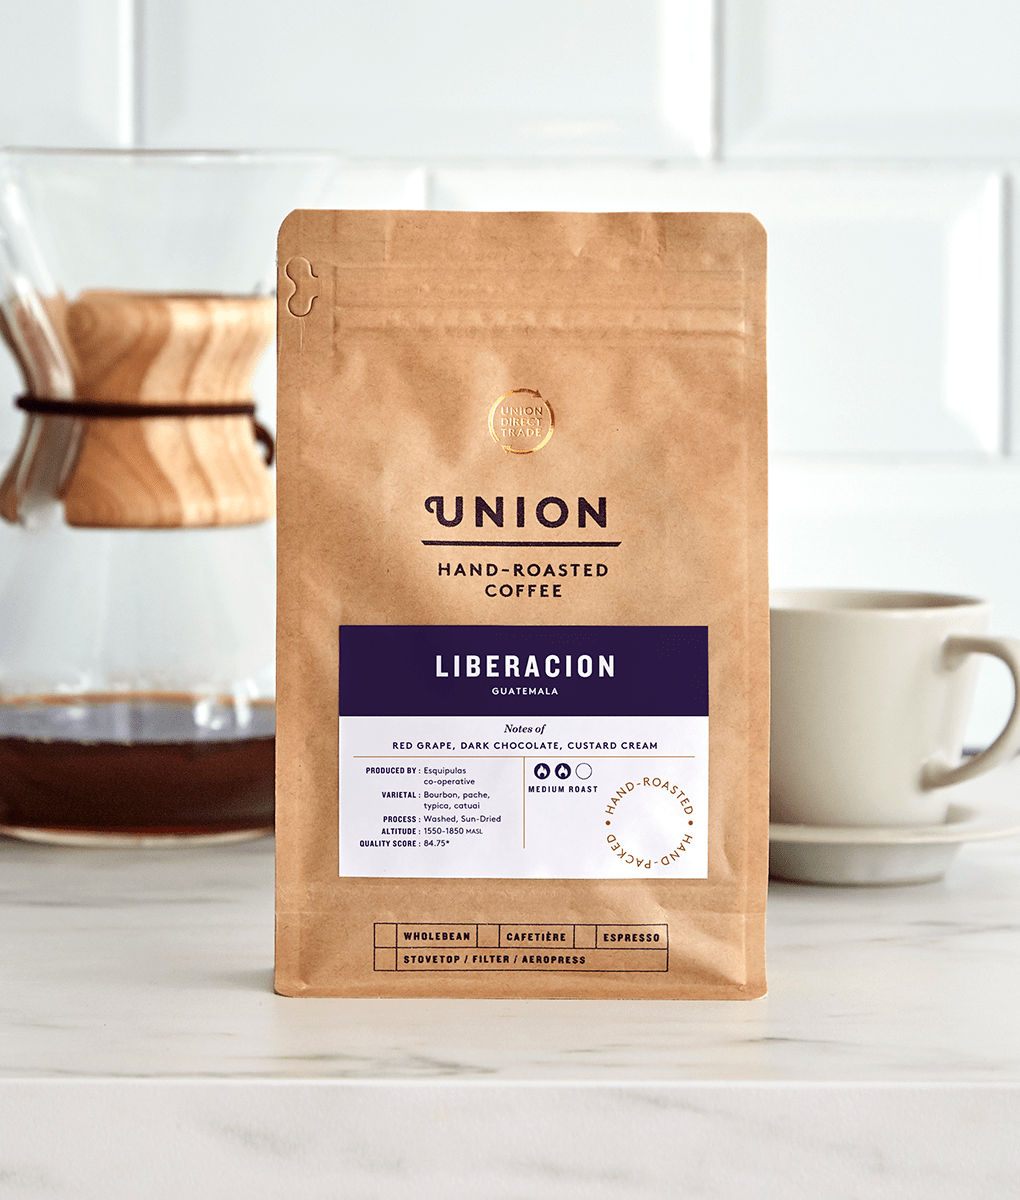 Liberacion, Guatemala, Union Coffee Bag